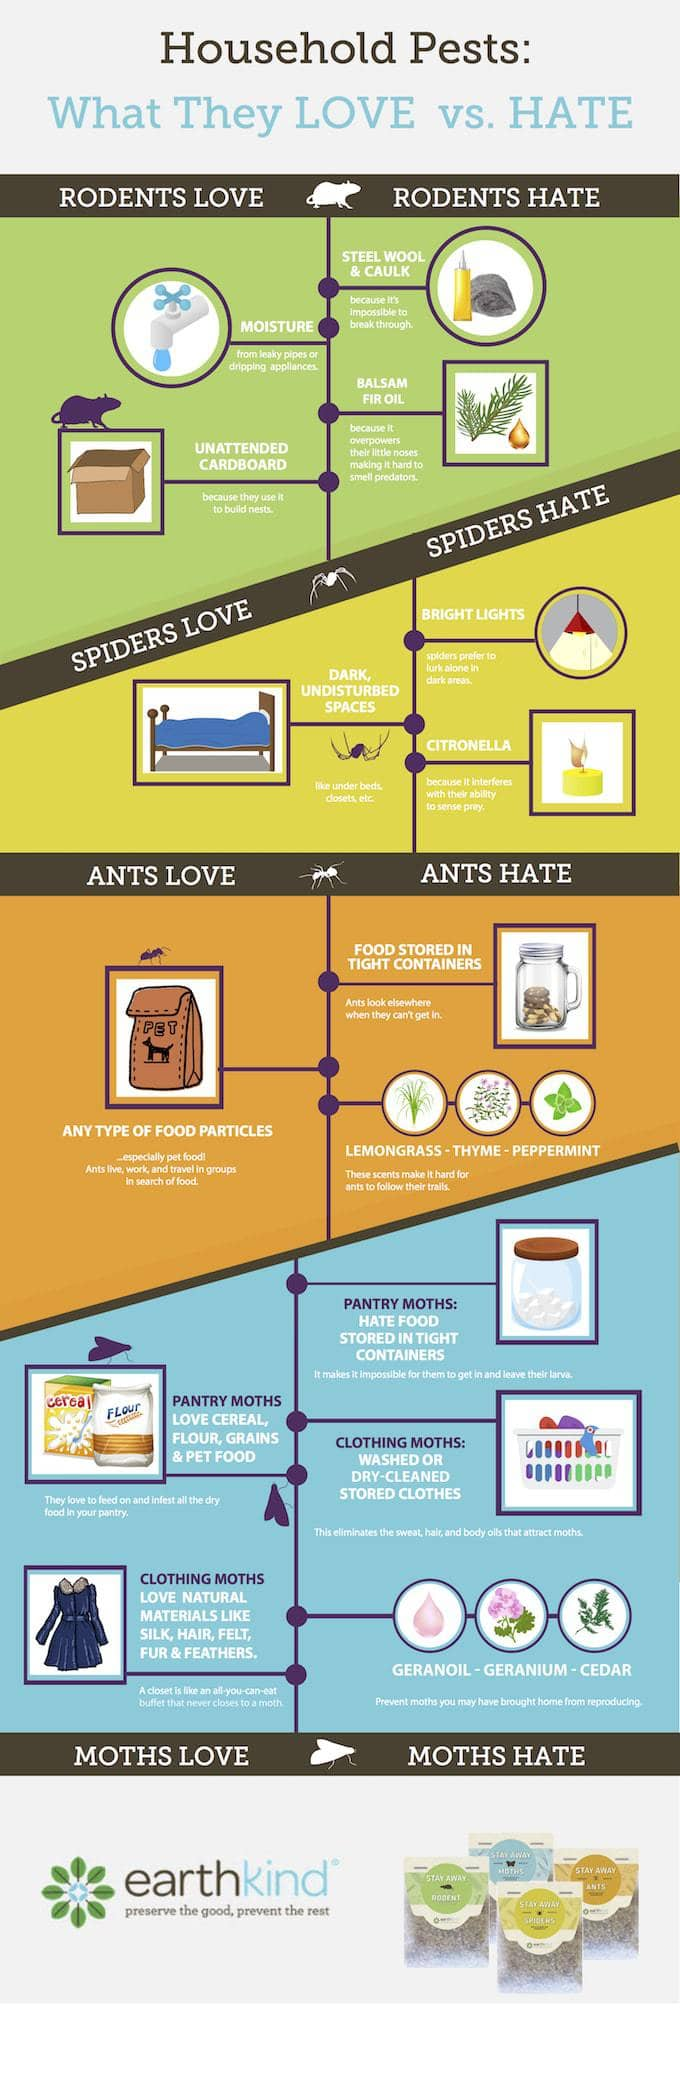 In honor of Earth Day, we've teamed up with EarthKind's Stay Away for this post on Natural Pest Control for home. Whether you've got ants, rodents, spiders or moths, there are safe, nontoxic and effective pest control options without harmful chemicals or inhumane killing. Get the scoop here, plus enter to win the giveaway!